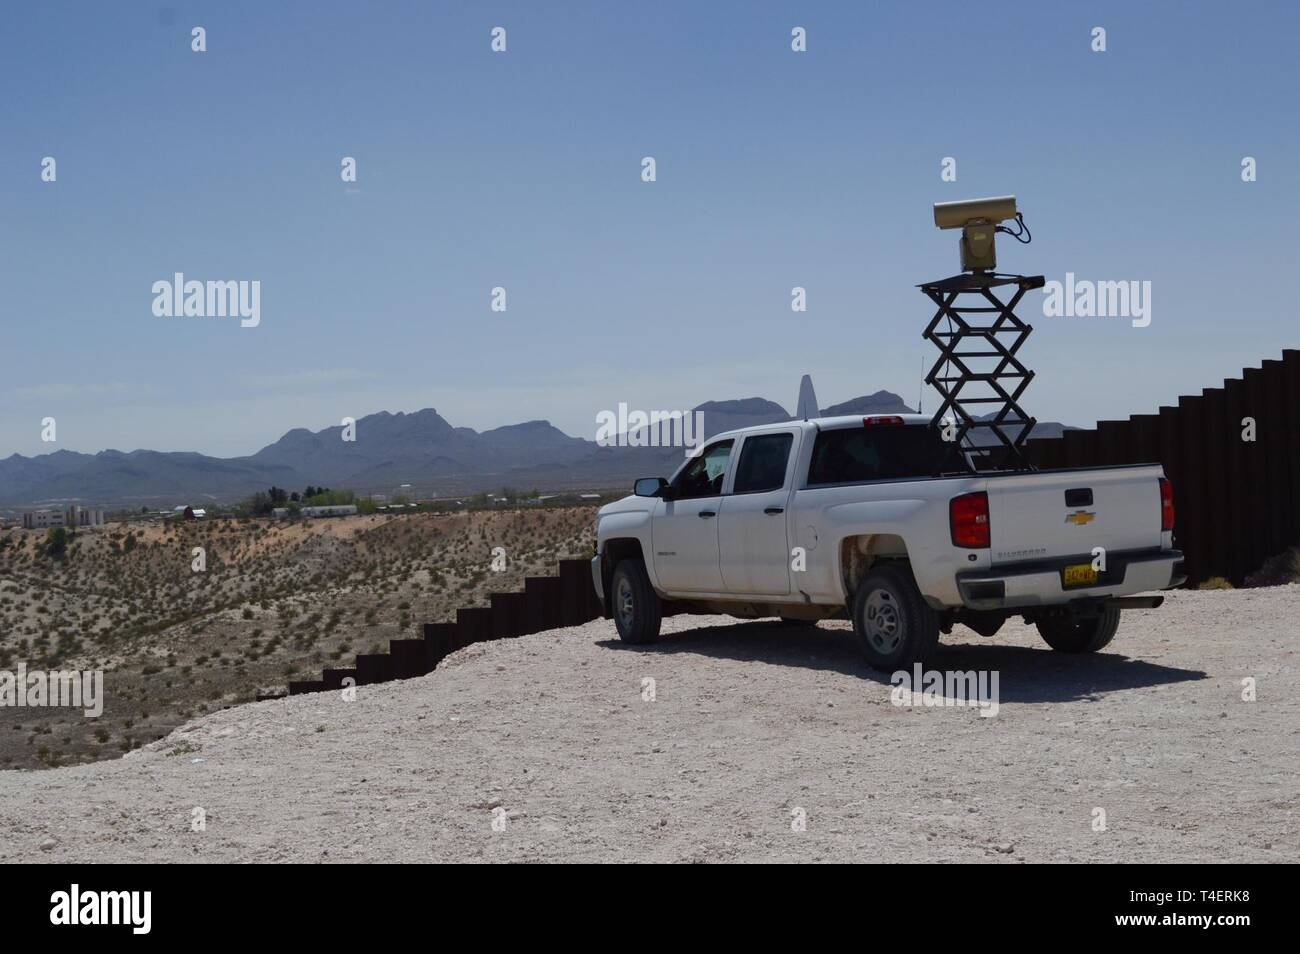 "A Mobile Surveillance Camera parked at ""Monument One"" near the Santa Teresa Port of Entry in Sunland Park, N.M., April 3, 2019. The Monument One MSC is one of 22 along the New Mexico/Mexico border operated by Soldiers assigned to 1-37 Field Artillery Battalion. The Department of Defense has deployed units across the Southwest Border at the request of U.S. Customs and Border Protection and is providing logistical, engineering, and force protection functions. Stock Photo"